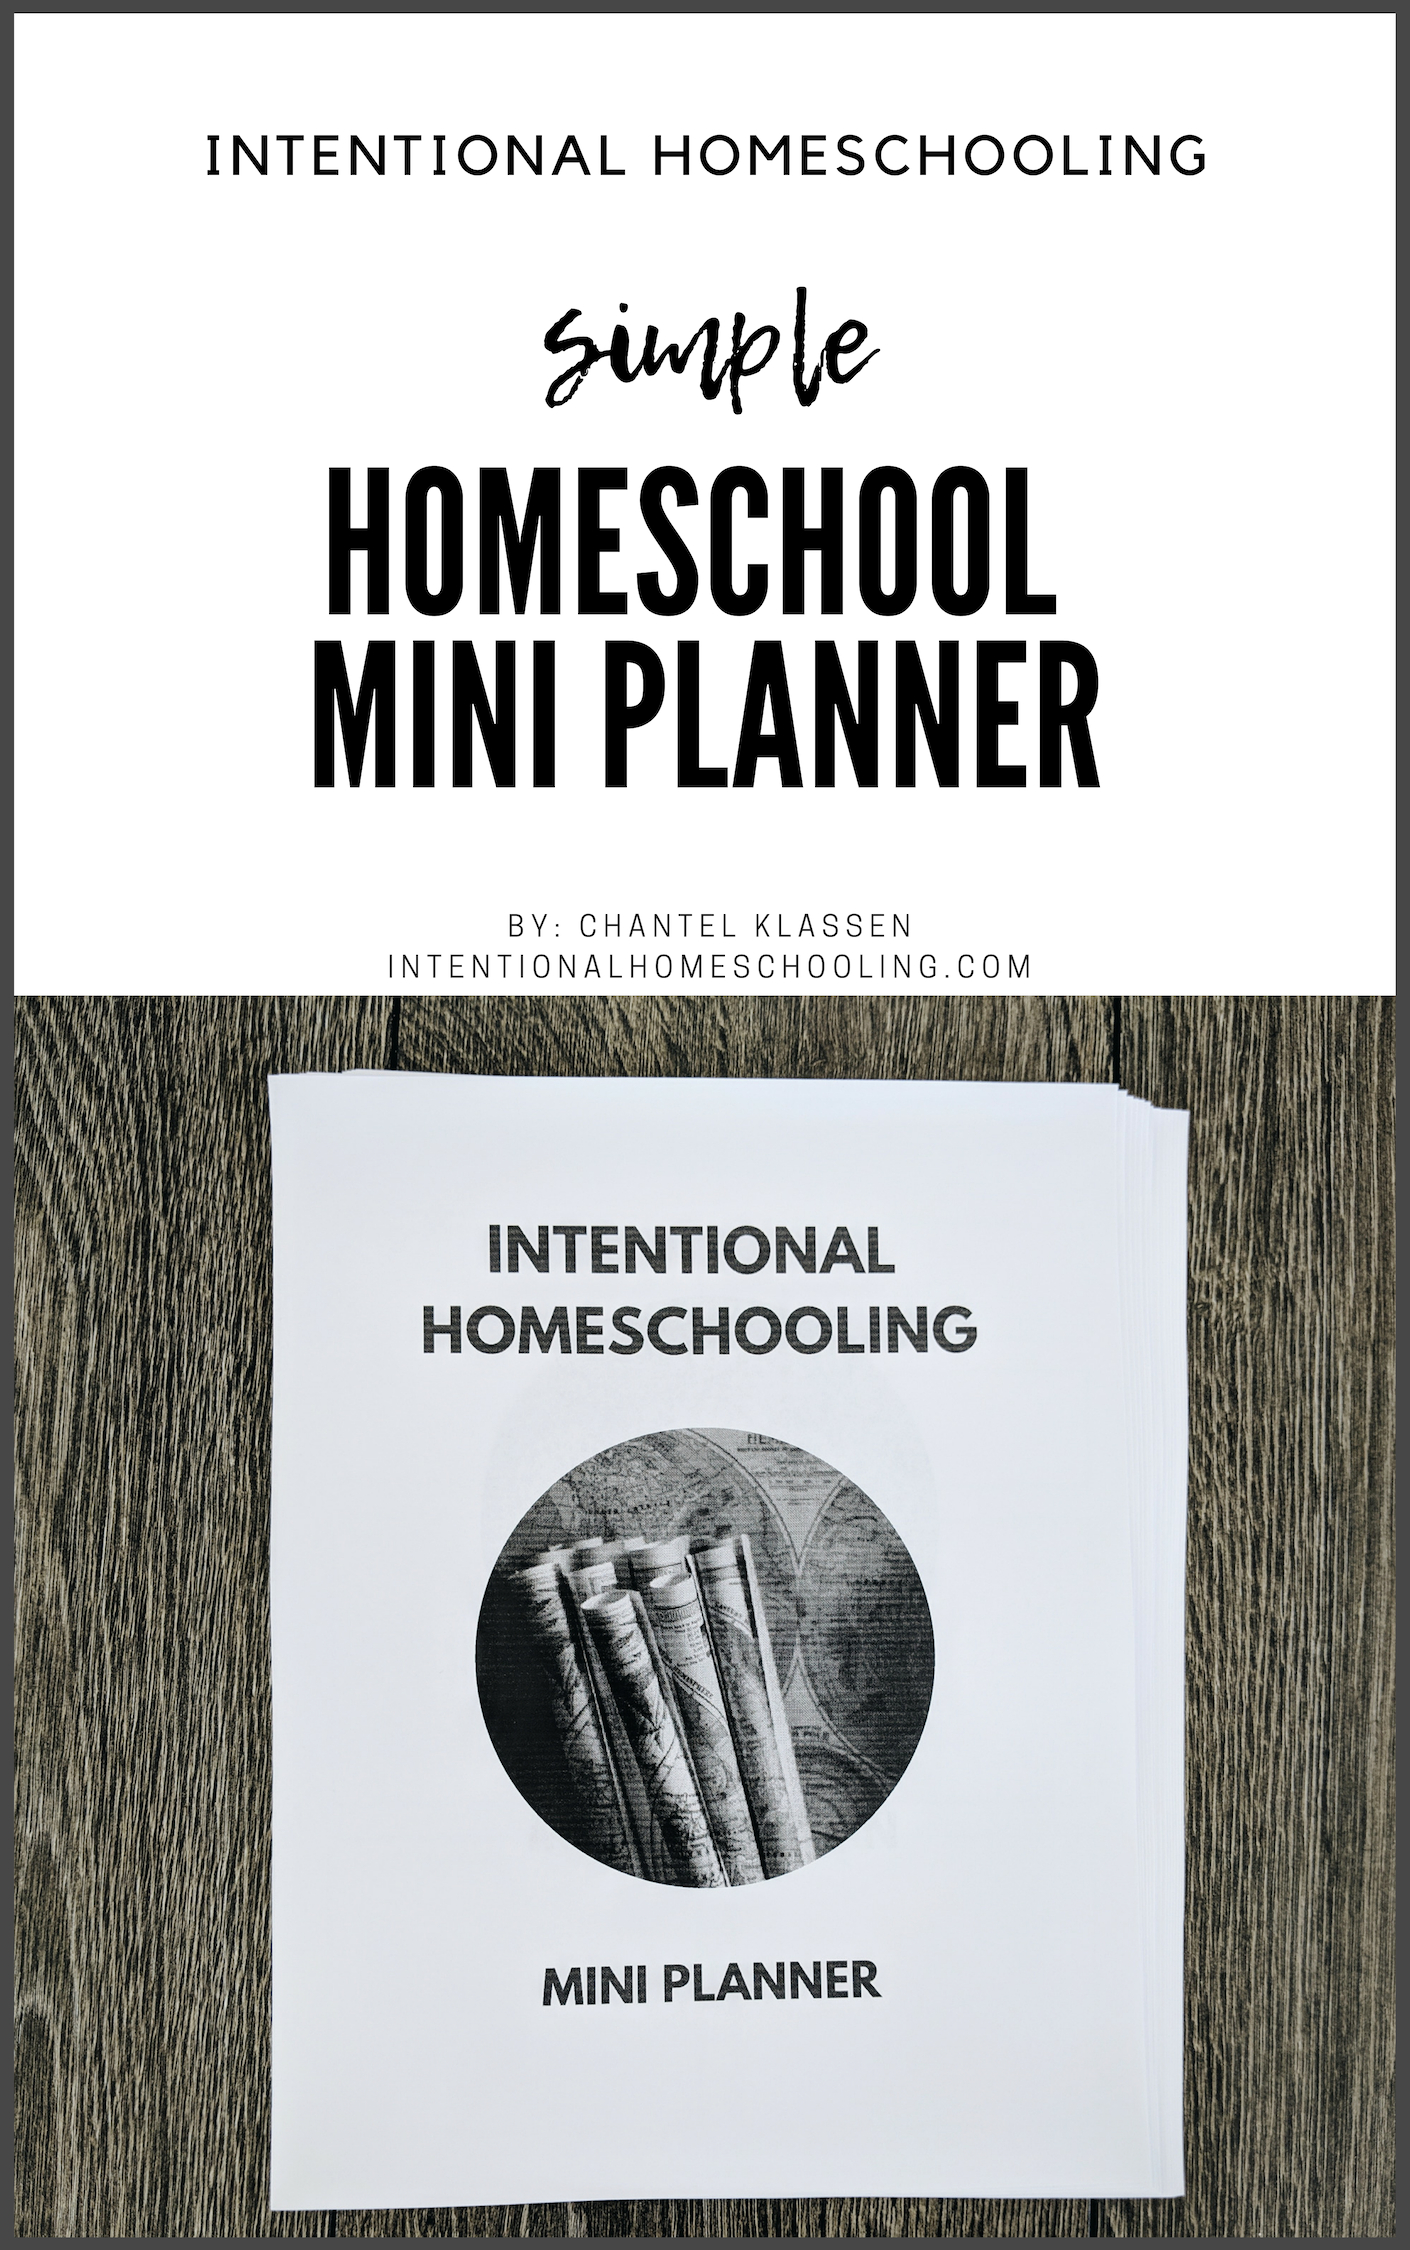 Homeschool Mini Planner - includes monthly planning sheets, weekly record sheets, unit study planner sheets and book lists sheets! Perfect for eclectic and minimal homeschoolers